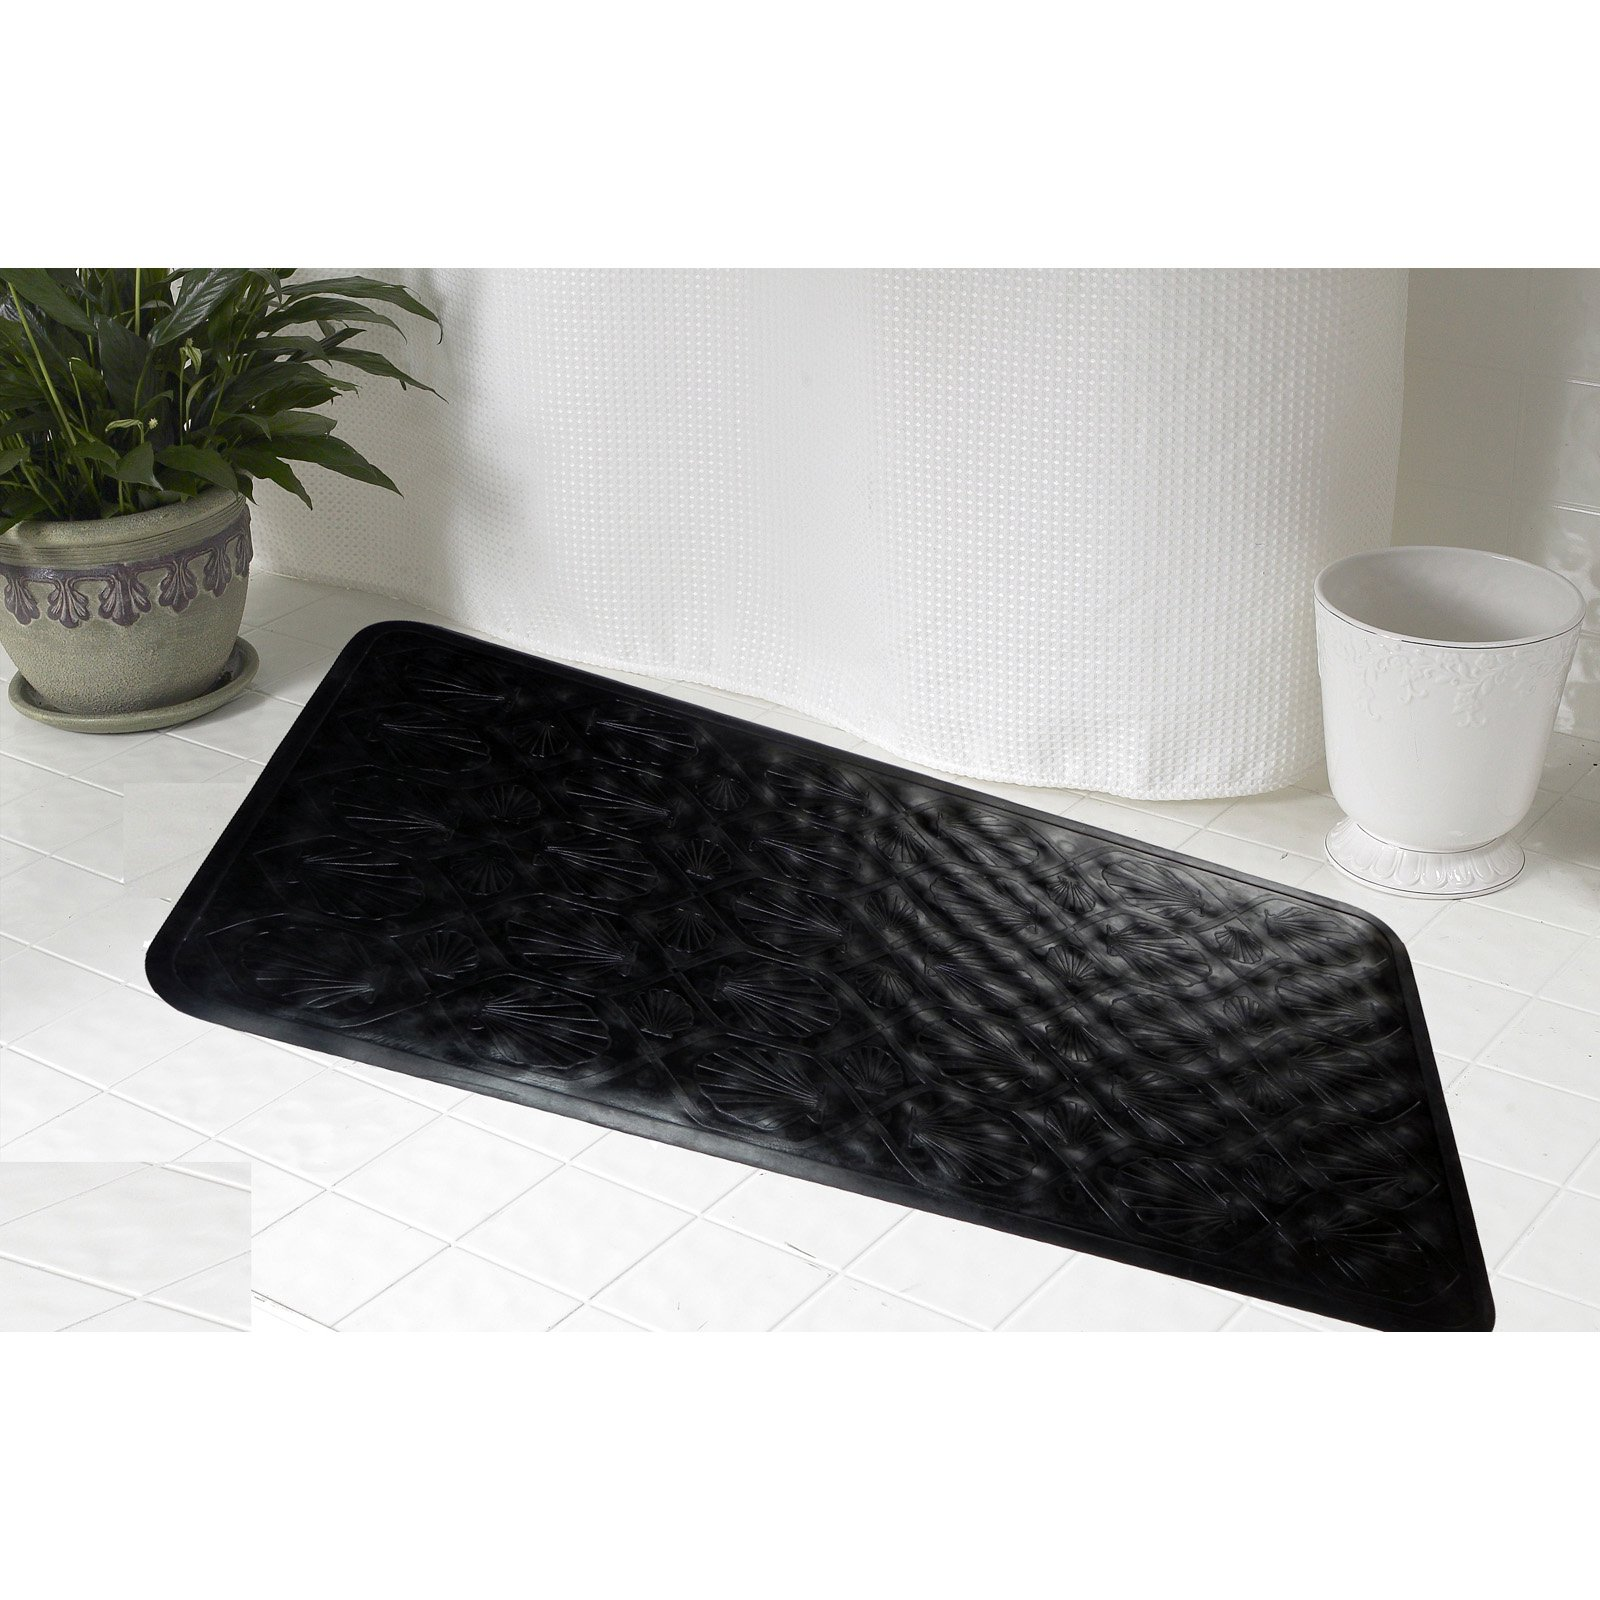 Large (18'' x 36'') Slip-Resistant Rubber Bath Tub Mat in Black